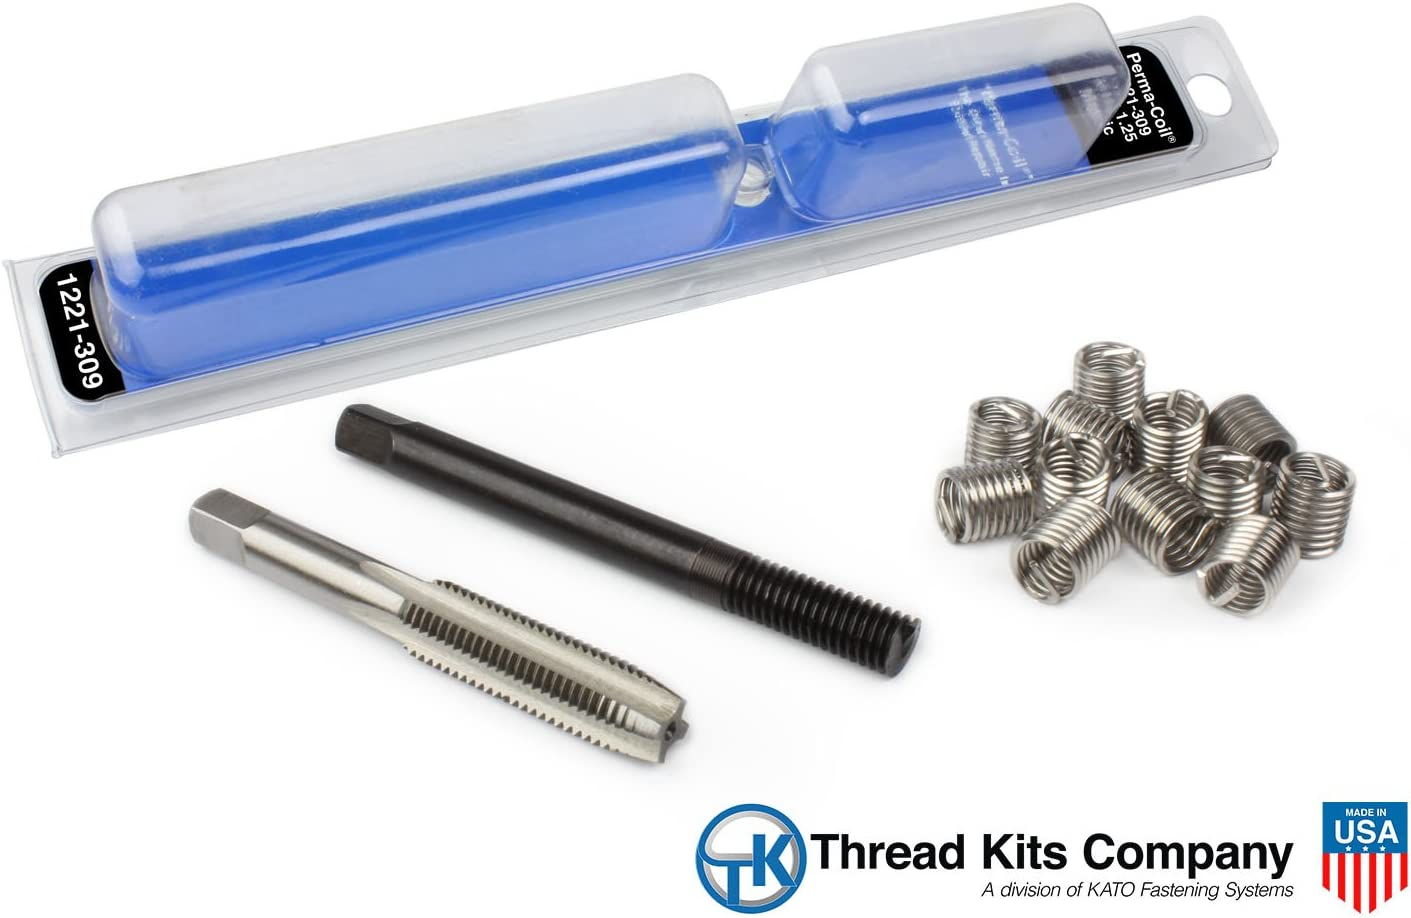 Thread Kits 1221-309 Thread Repair Kit